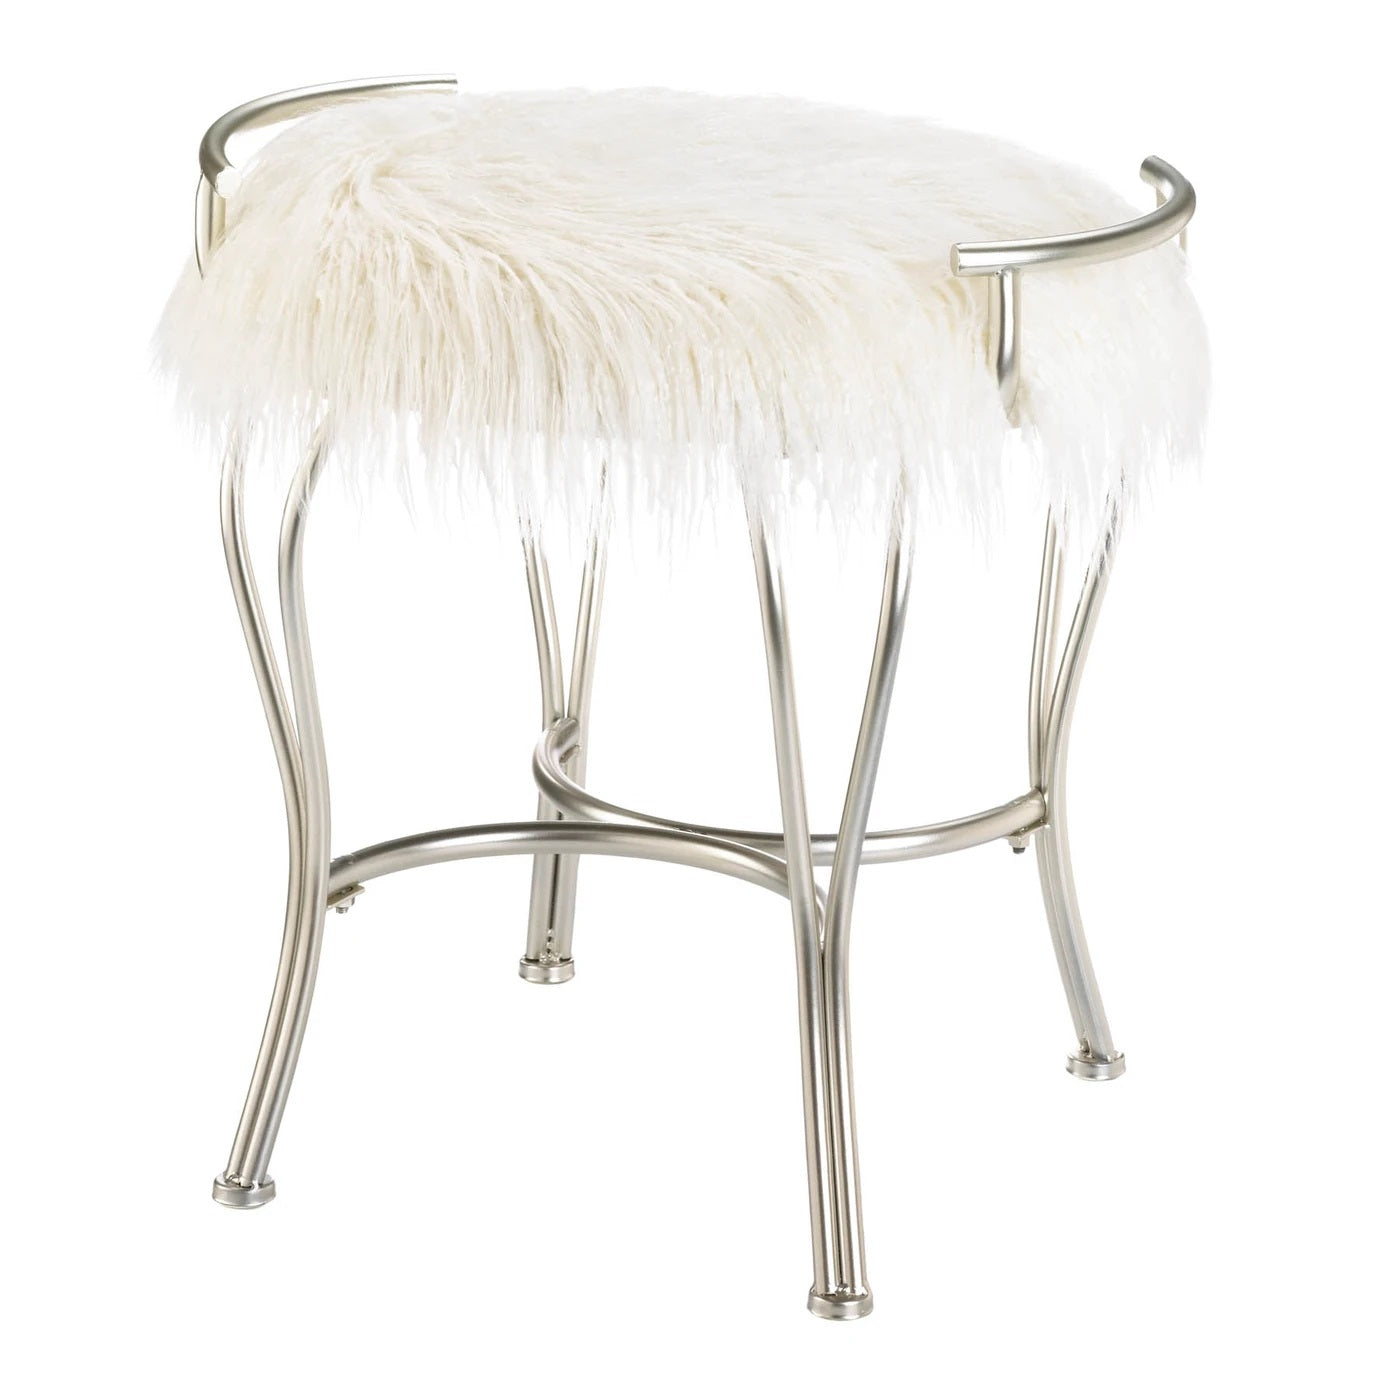 White Faux Fur Vanity Stool - Shop Stool - DARRA HOME